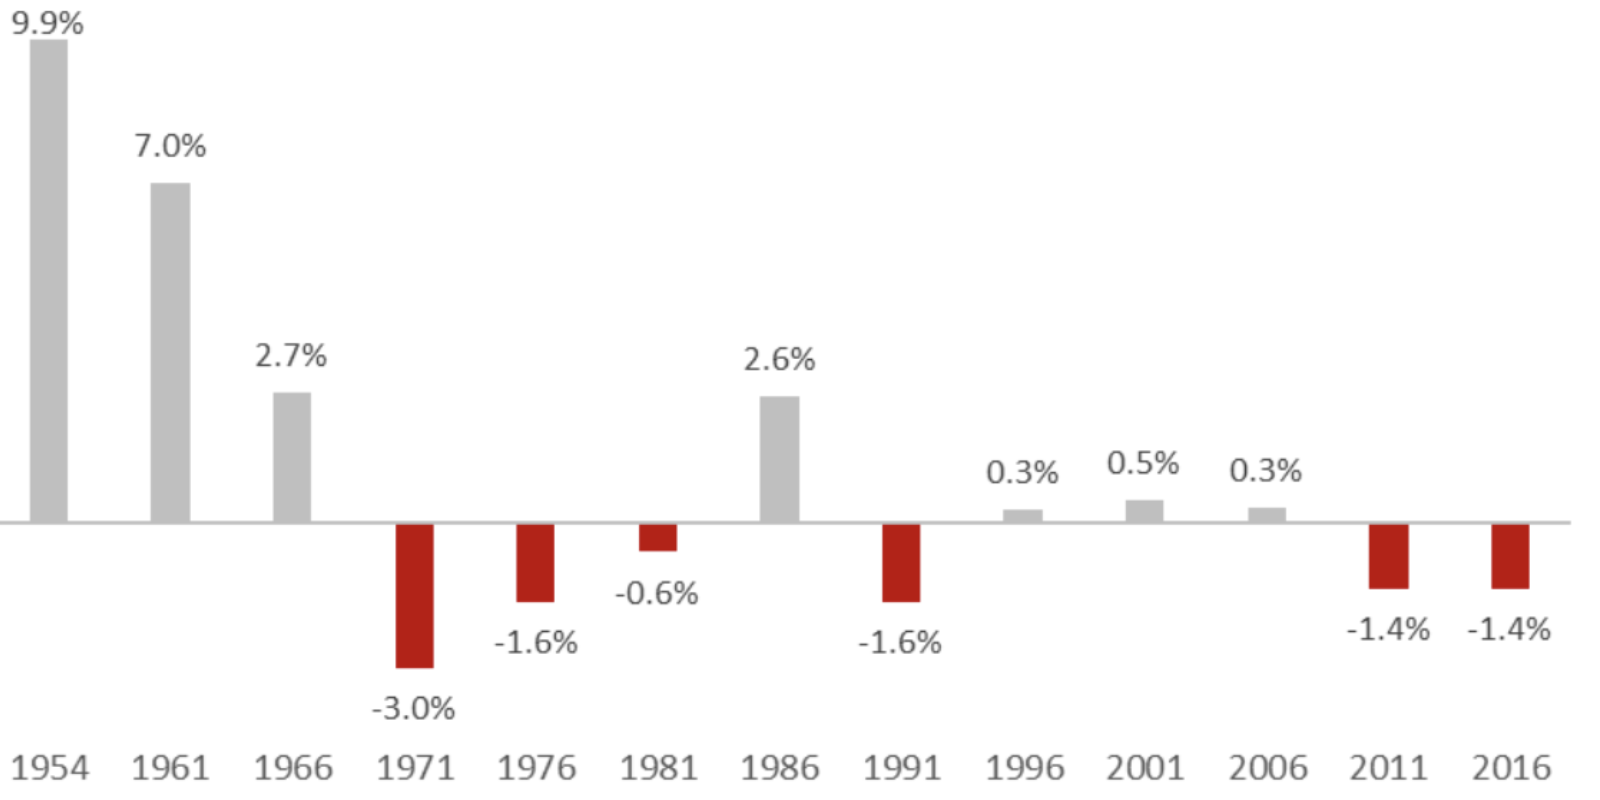 Changes in ownership by percentage points, 1954–2016